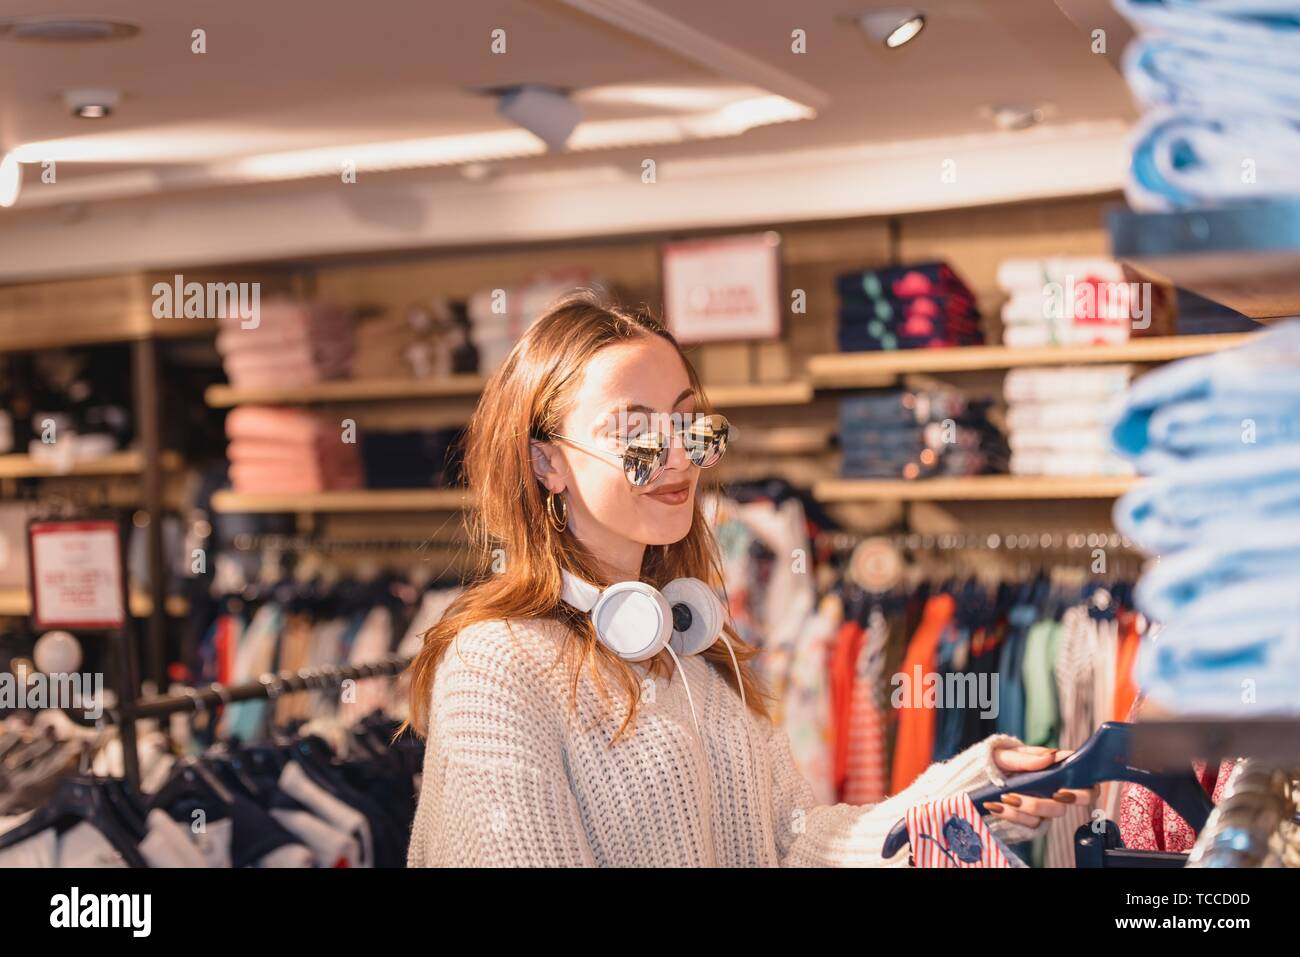 Beautiful attractive young girl in jumper with headphone and sunglasses chooses clothes thinking looking at clothing while shopping in store. Stock Photo